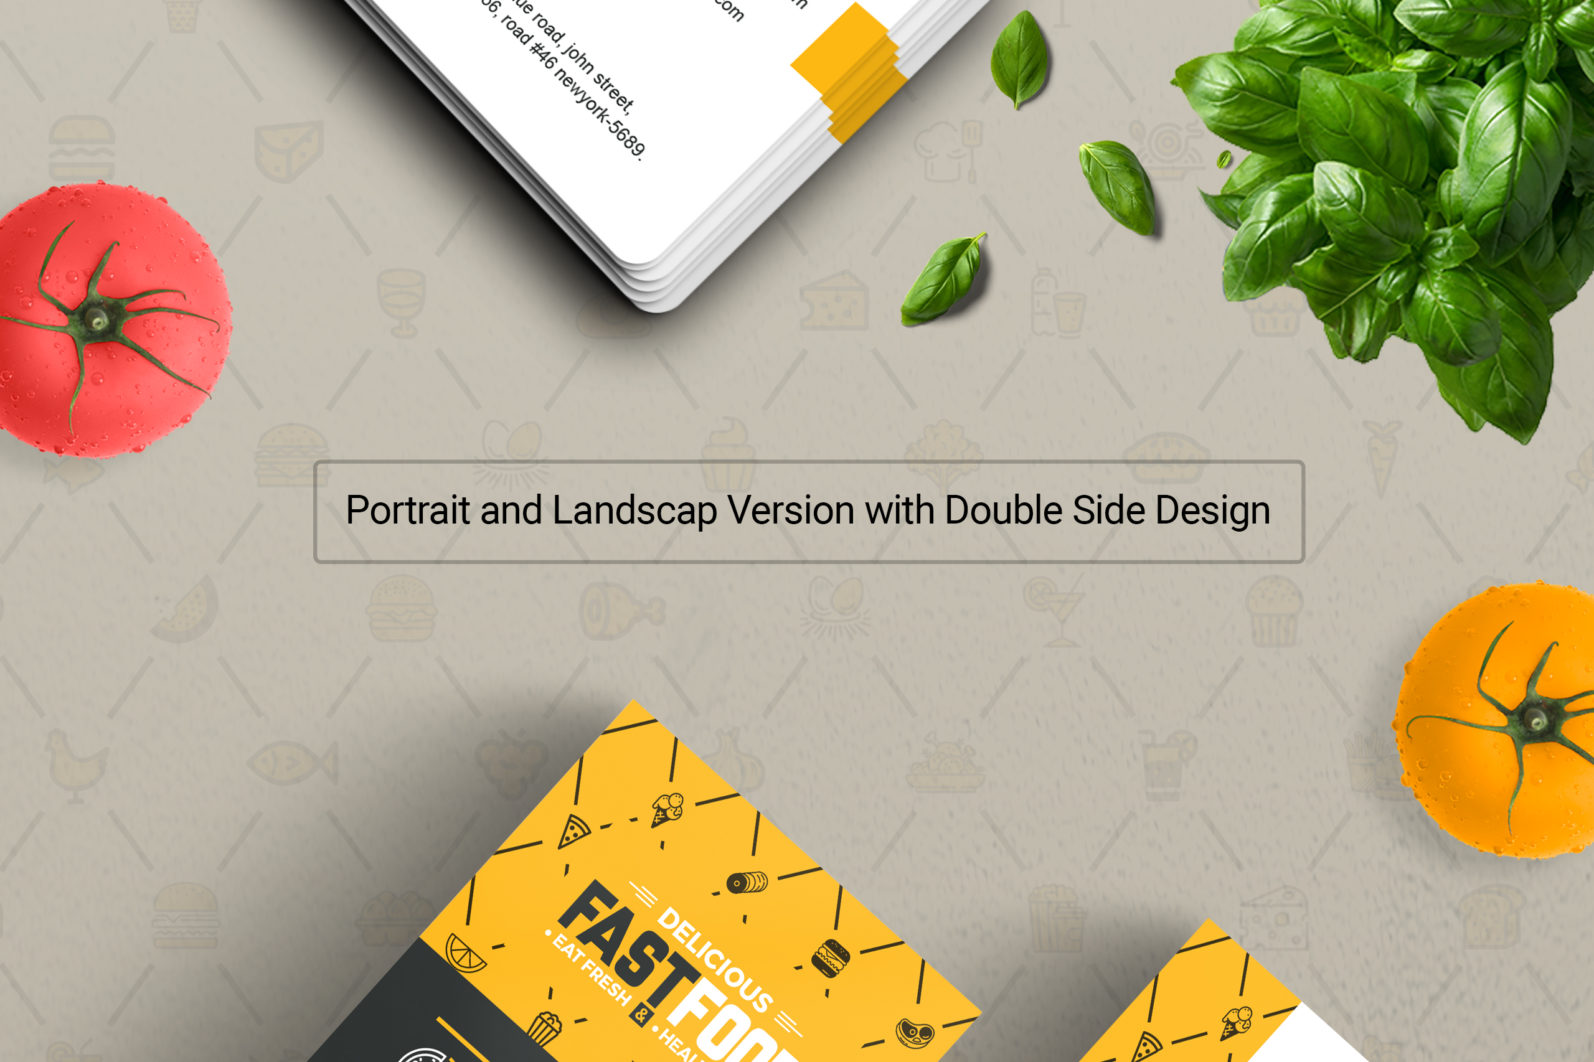 Mega Stationery Branding Identity for Fast Food and Restaurant - 01 Business Card -